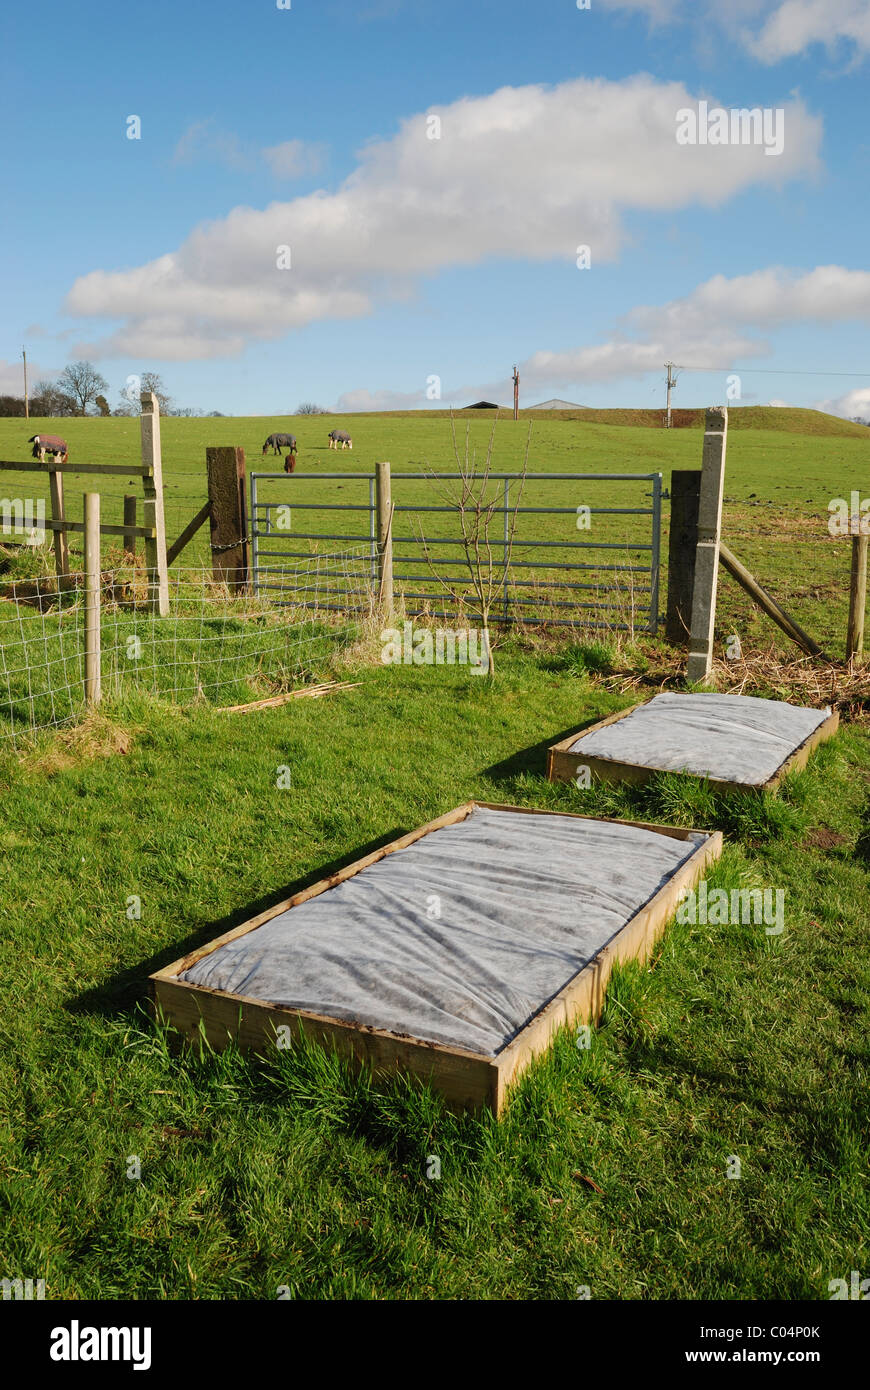 Raised vegetable beds covered in horticultural fleece. Lincolnshire, England. - Stock Image